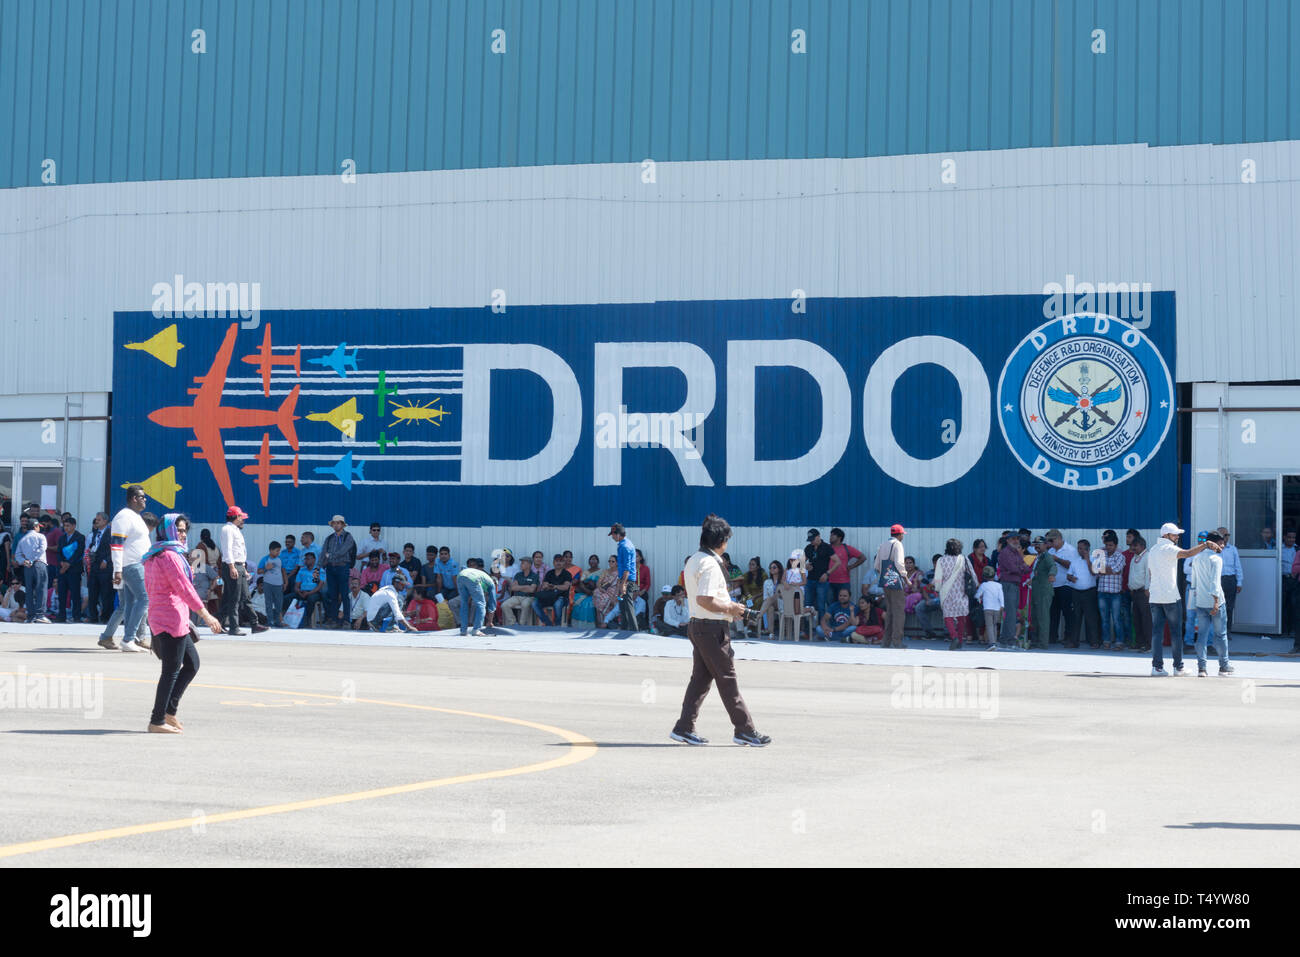 Bengaluru, India - February 22, 2019: Visitors at the Aero India 2019 rest from the shade outside the DRDO hall. Aero India is a biennial air show and - Stock Image